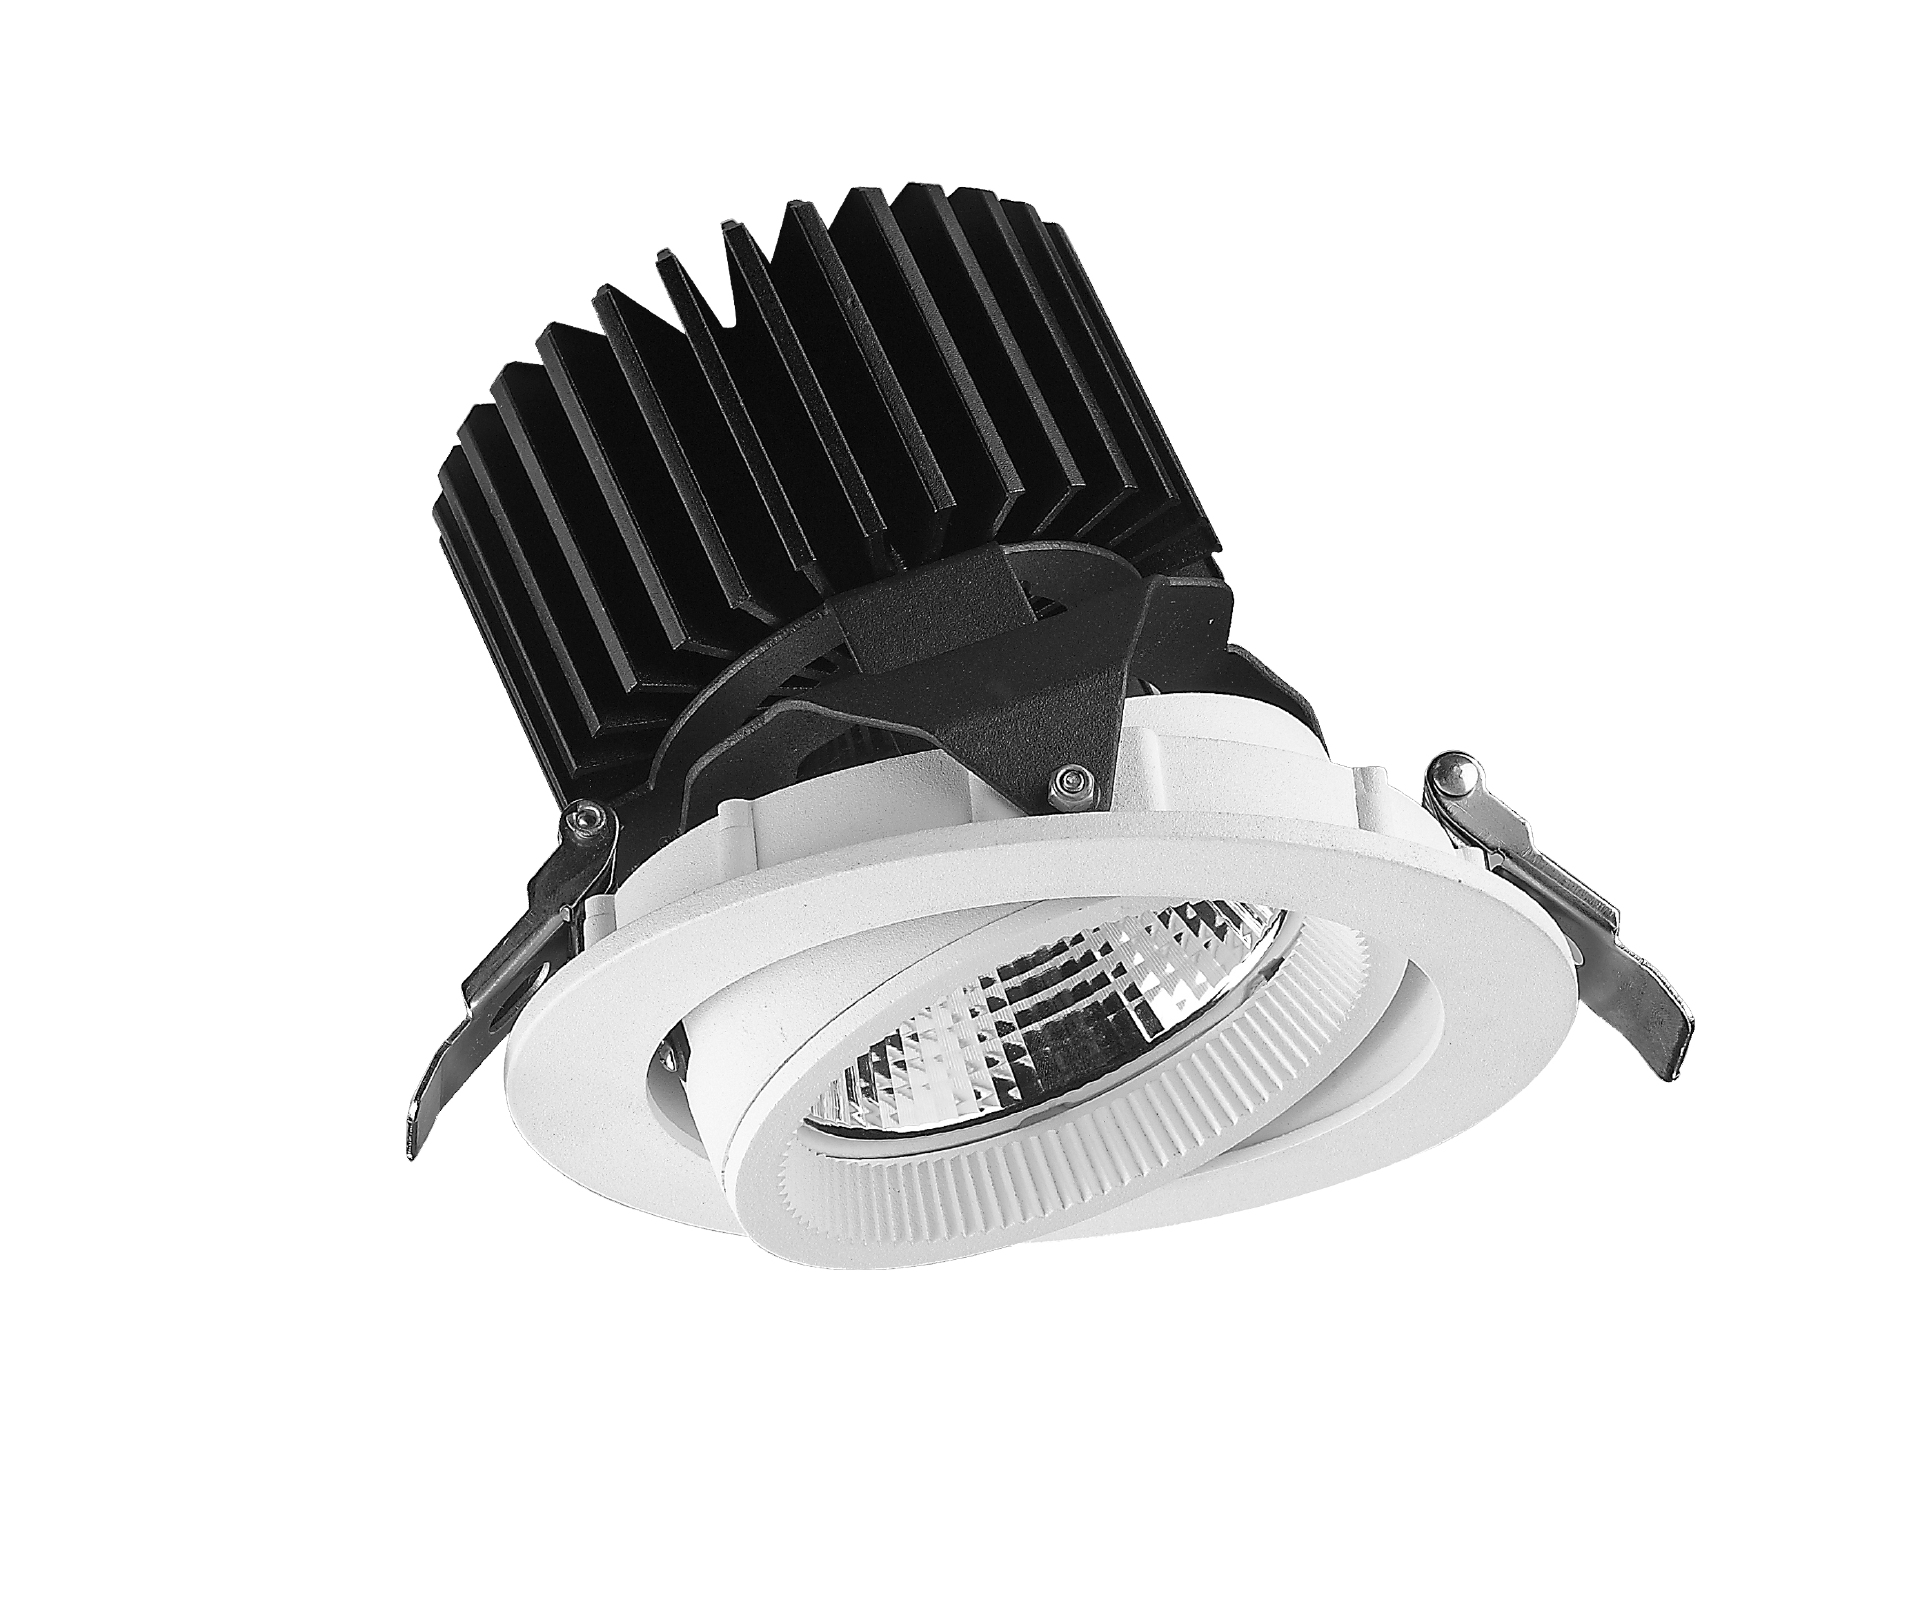 ADJ06 Adjustable LED Downlight 30W 35W